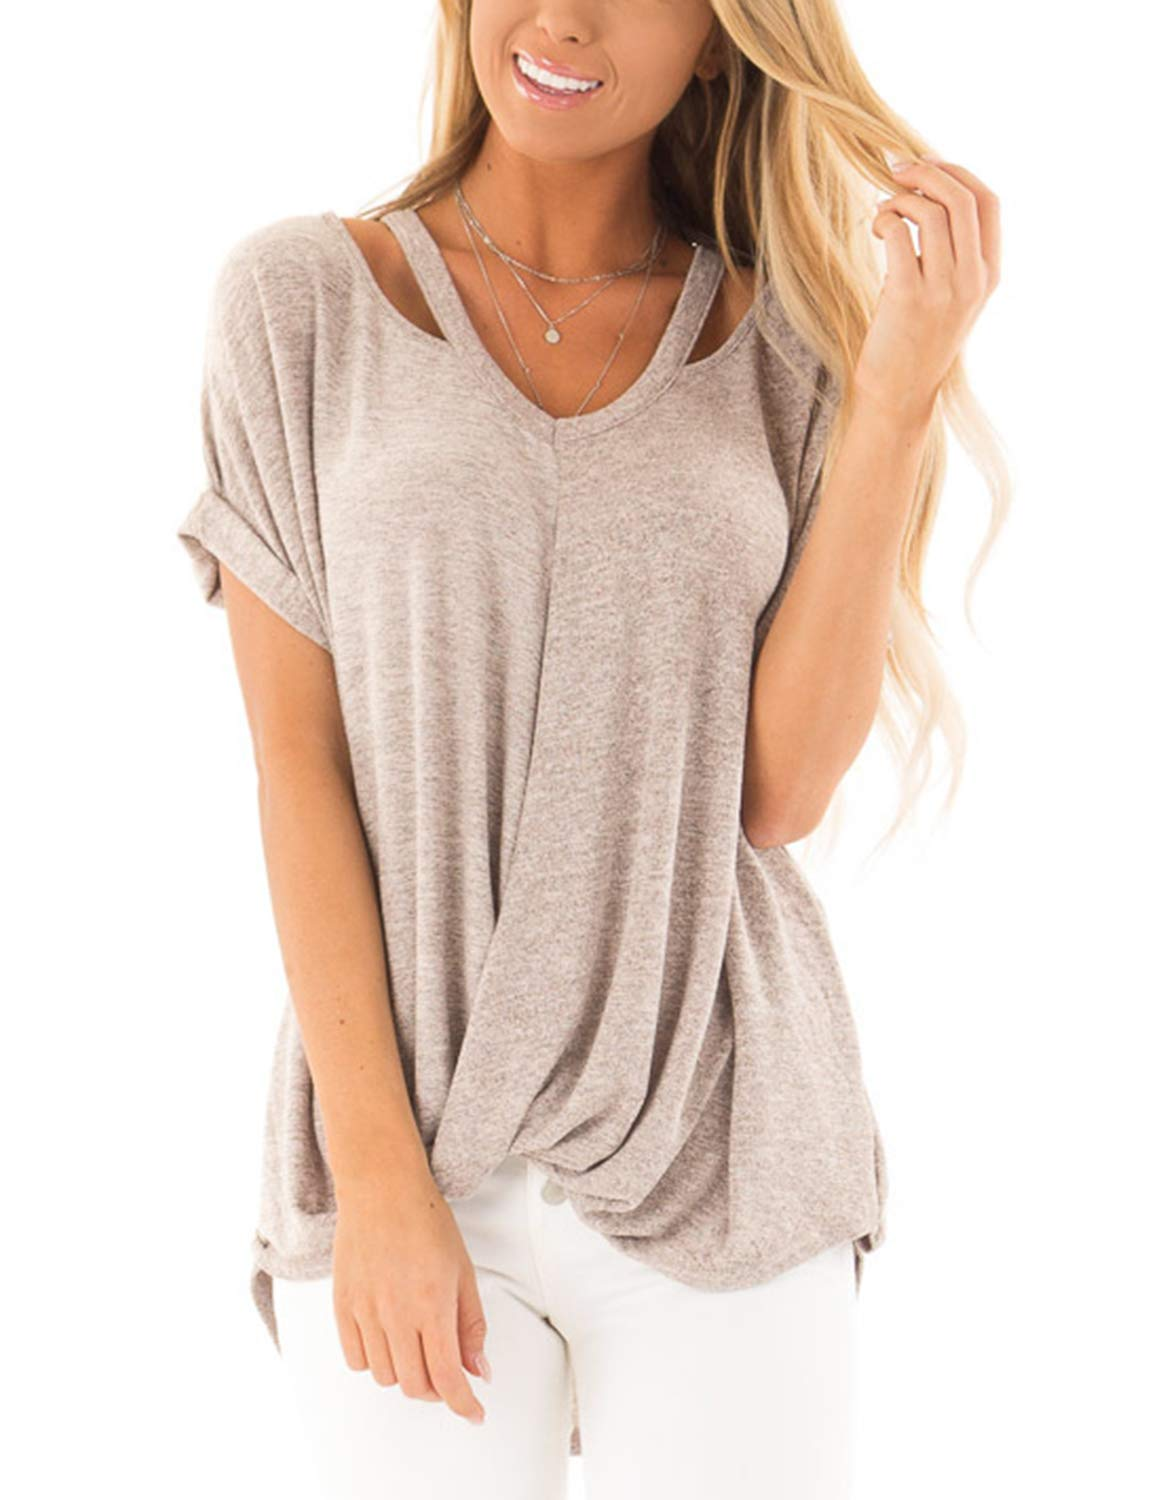 BMJL Women's V Neck T Shirt Short Sleeve Ruched Top Loose Fit Blouse Grey